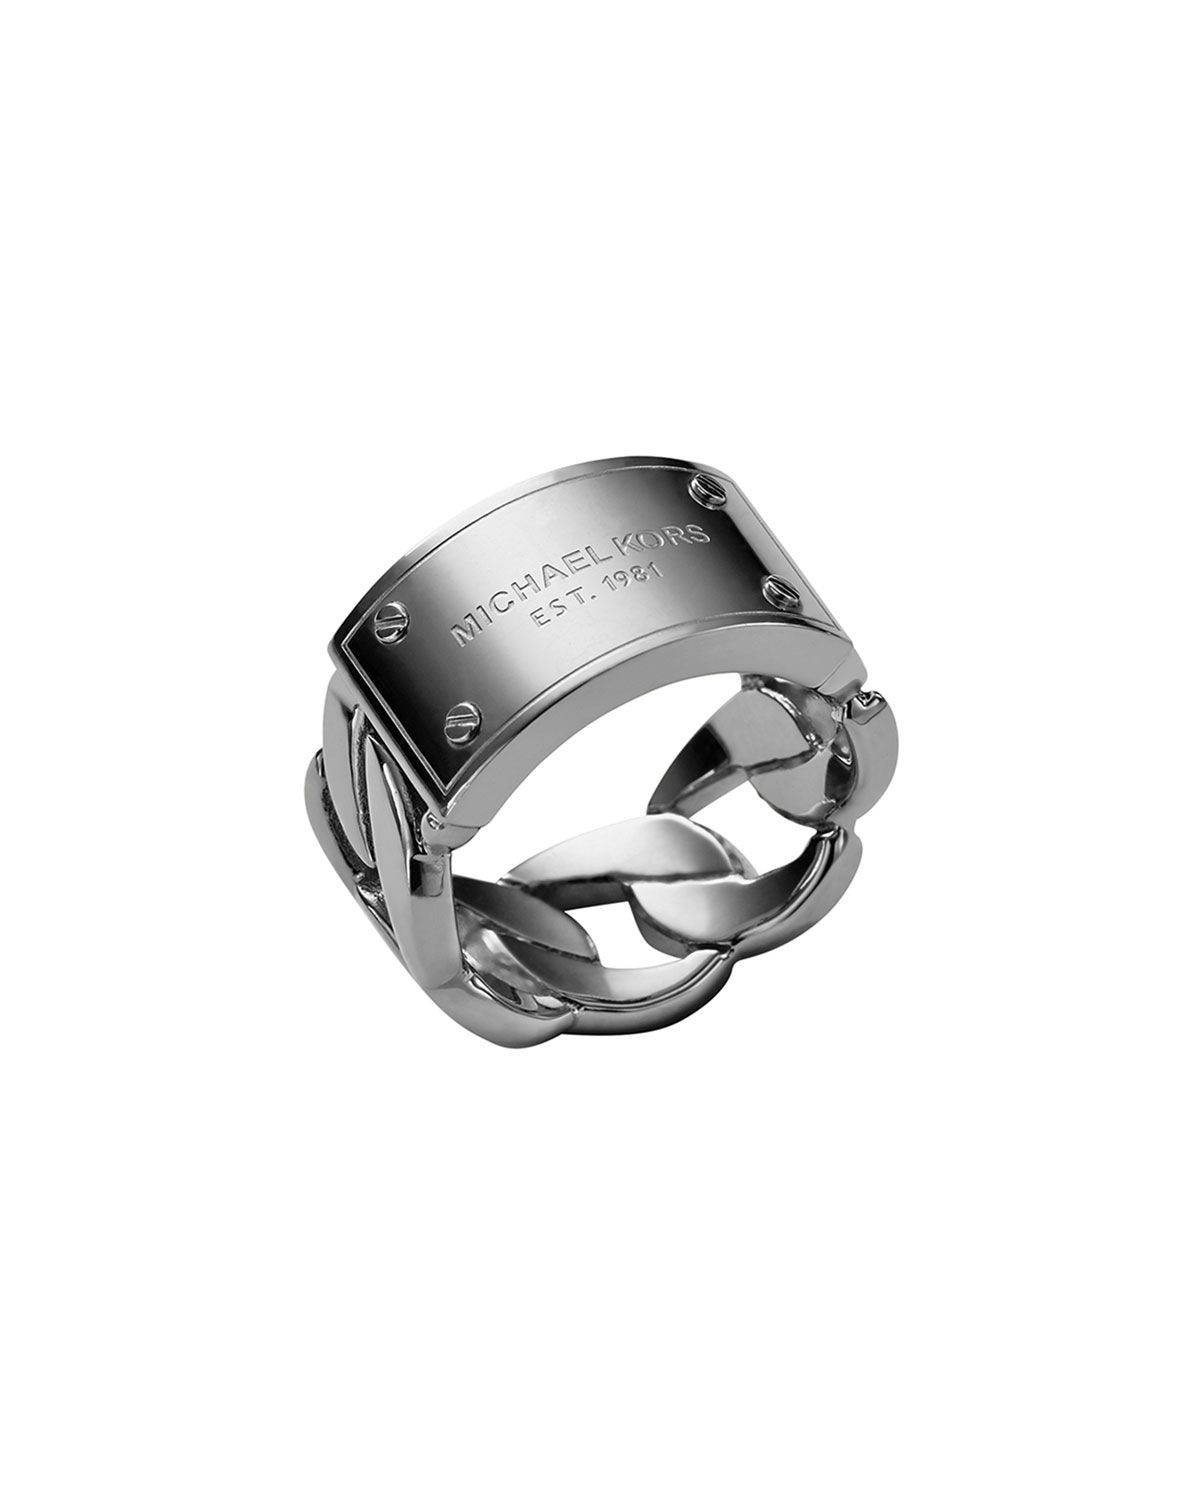 Michael Kors Curb-Chain Logo Ring, Silver Color